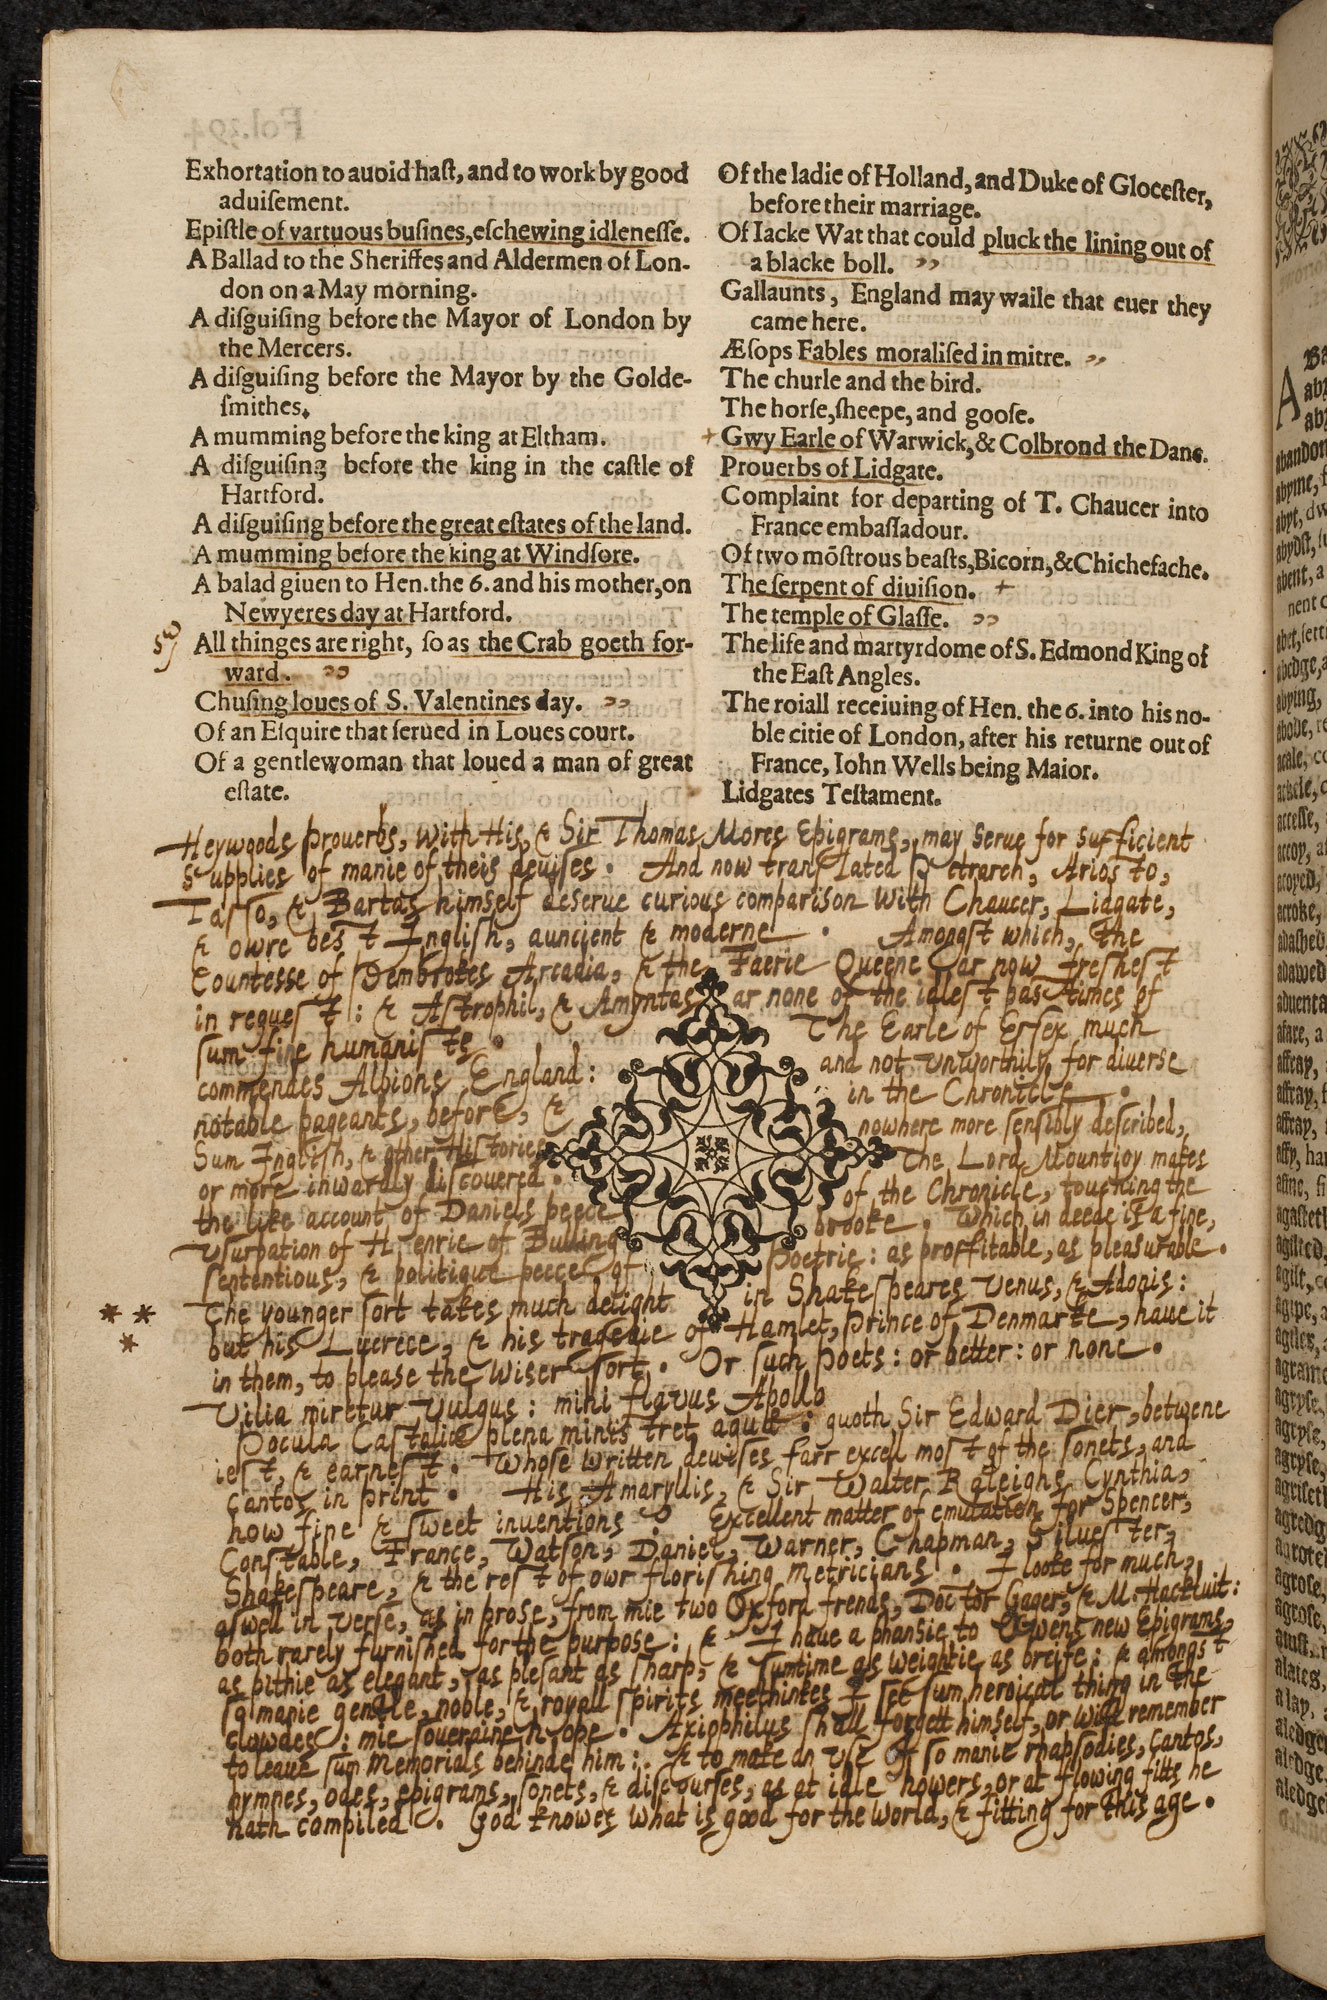 Earliest known reference to Shakespeare's Hamlet in Harvey's copy of